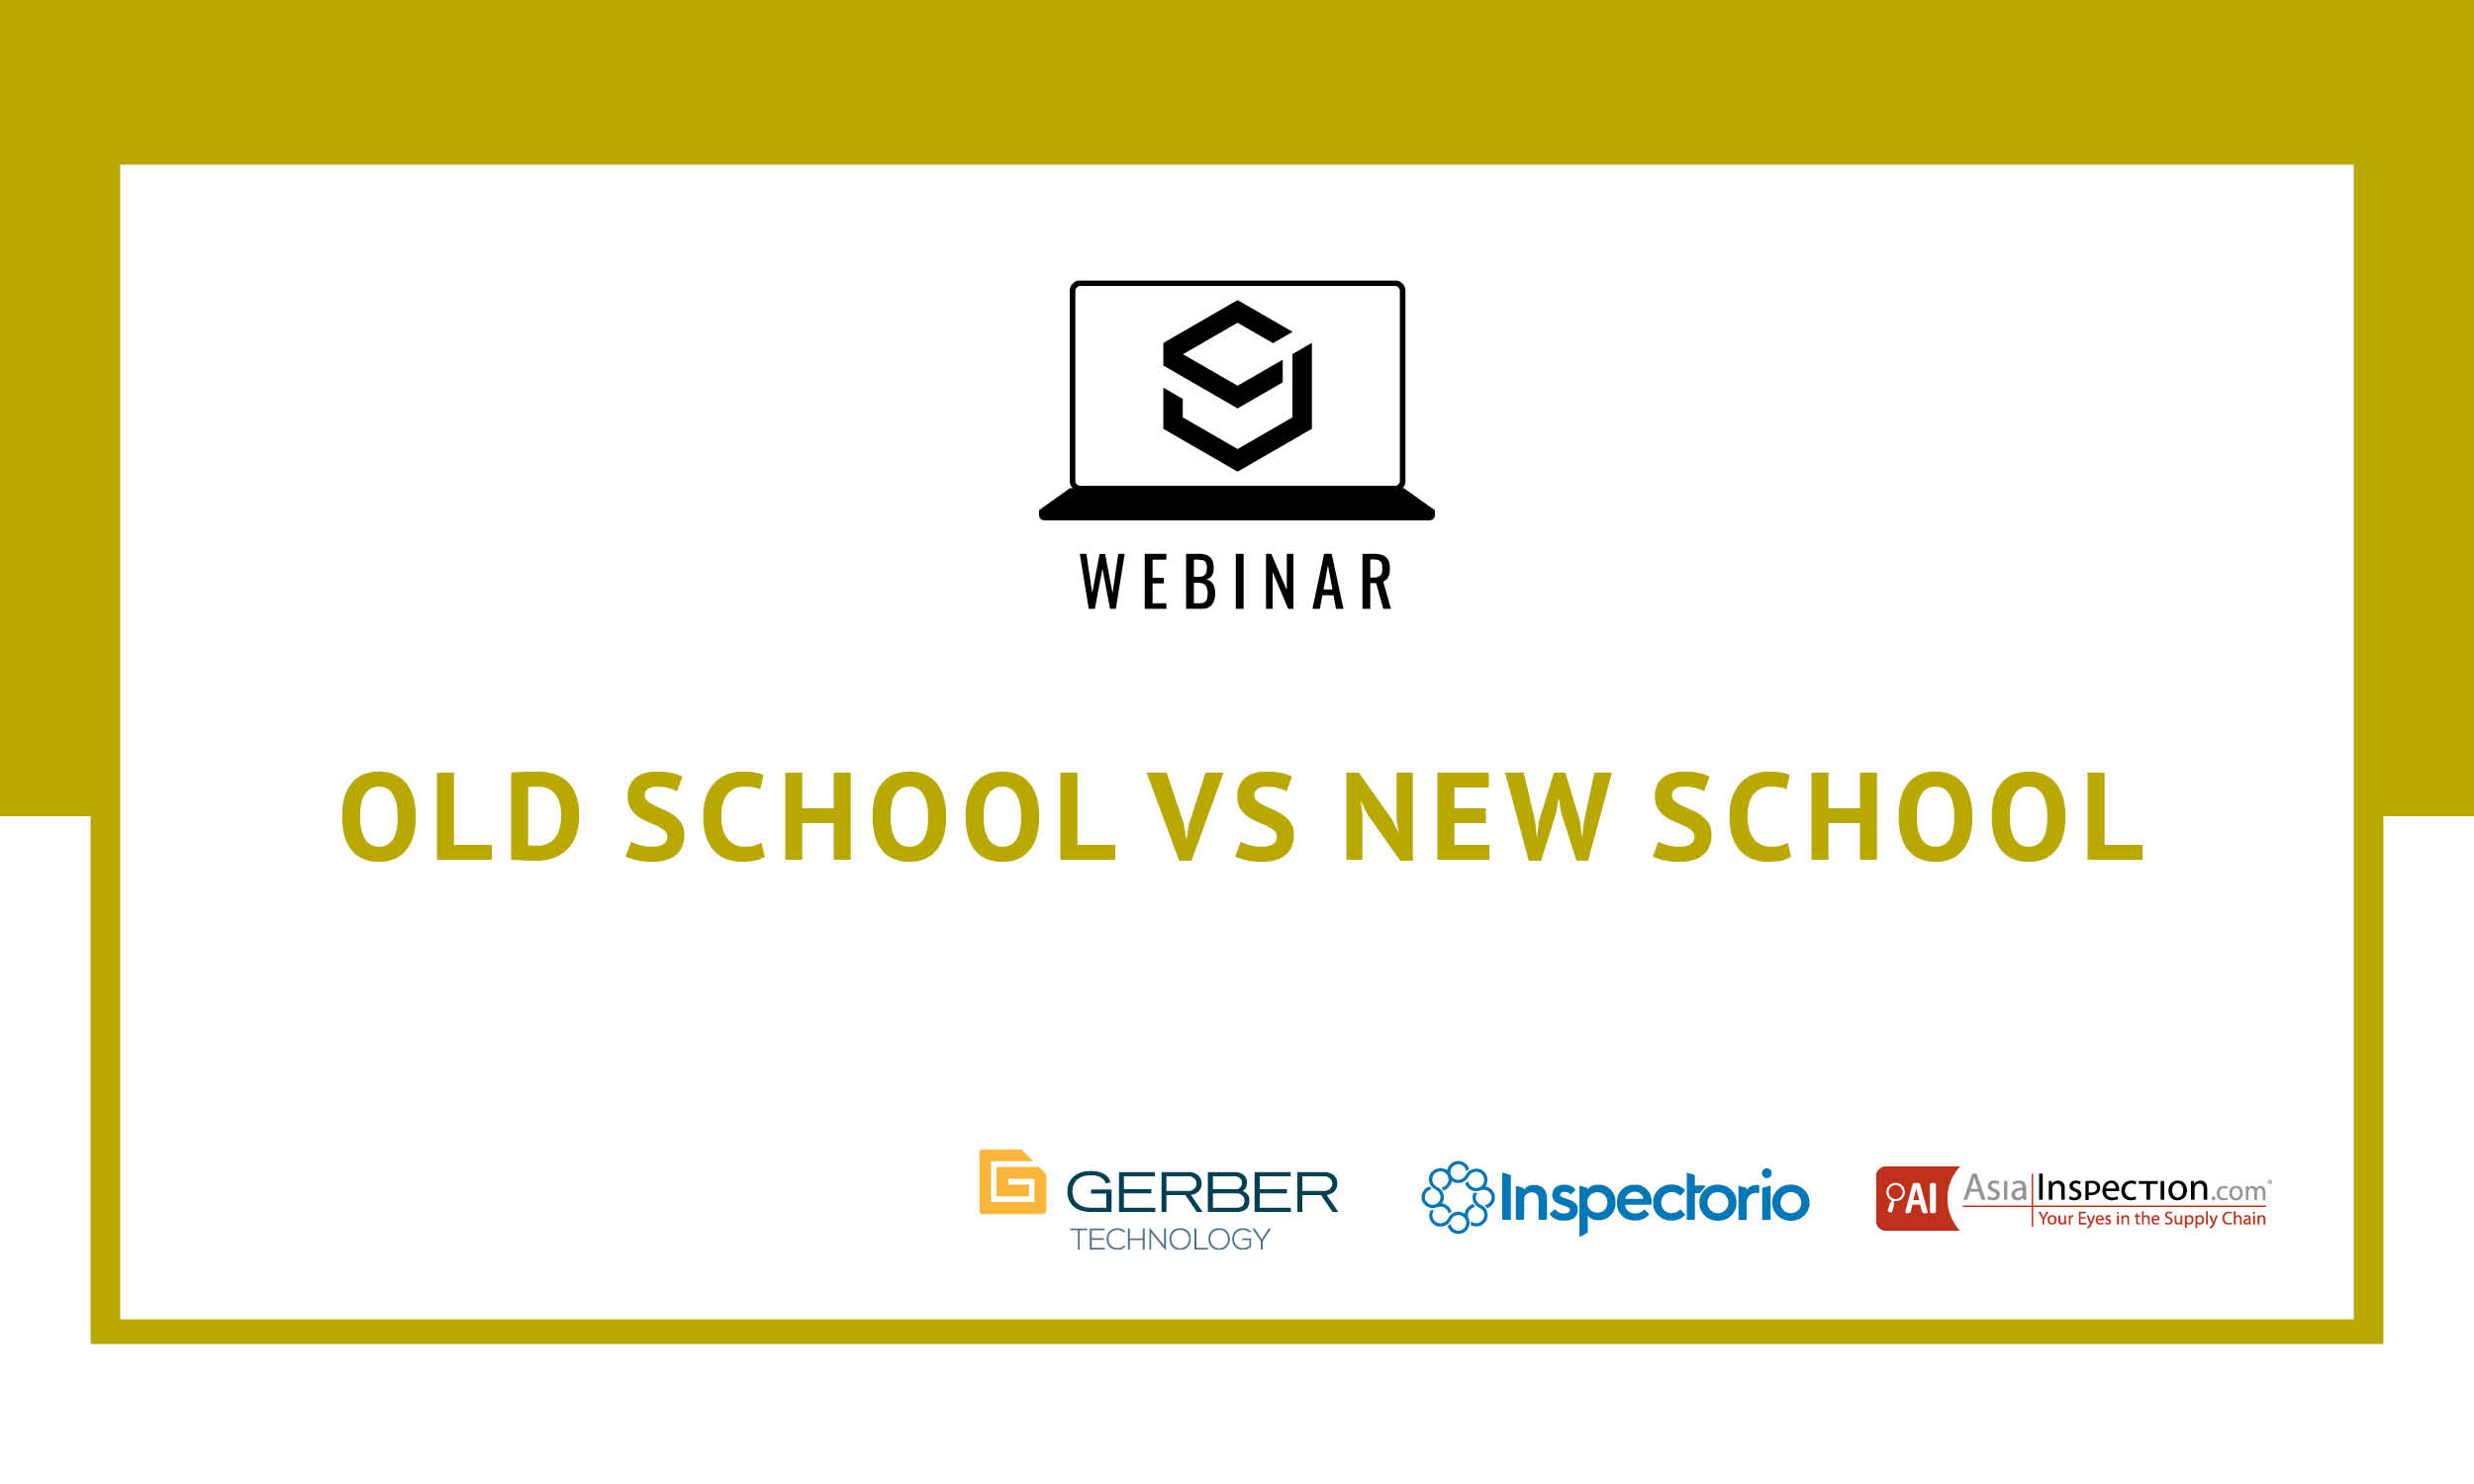 SJ Webinar: Old School vs. New School